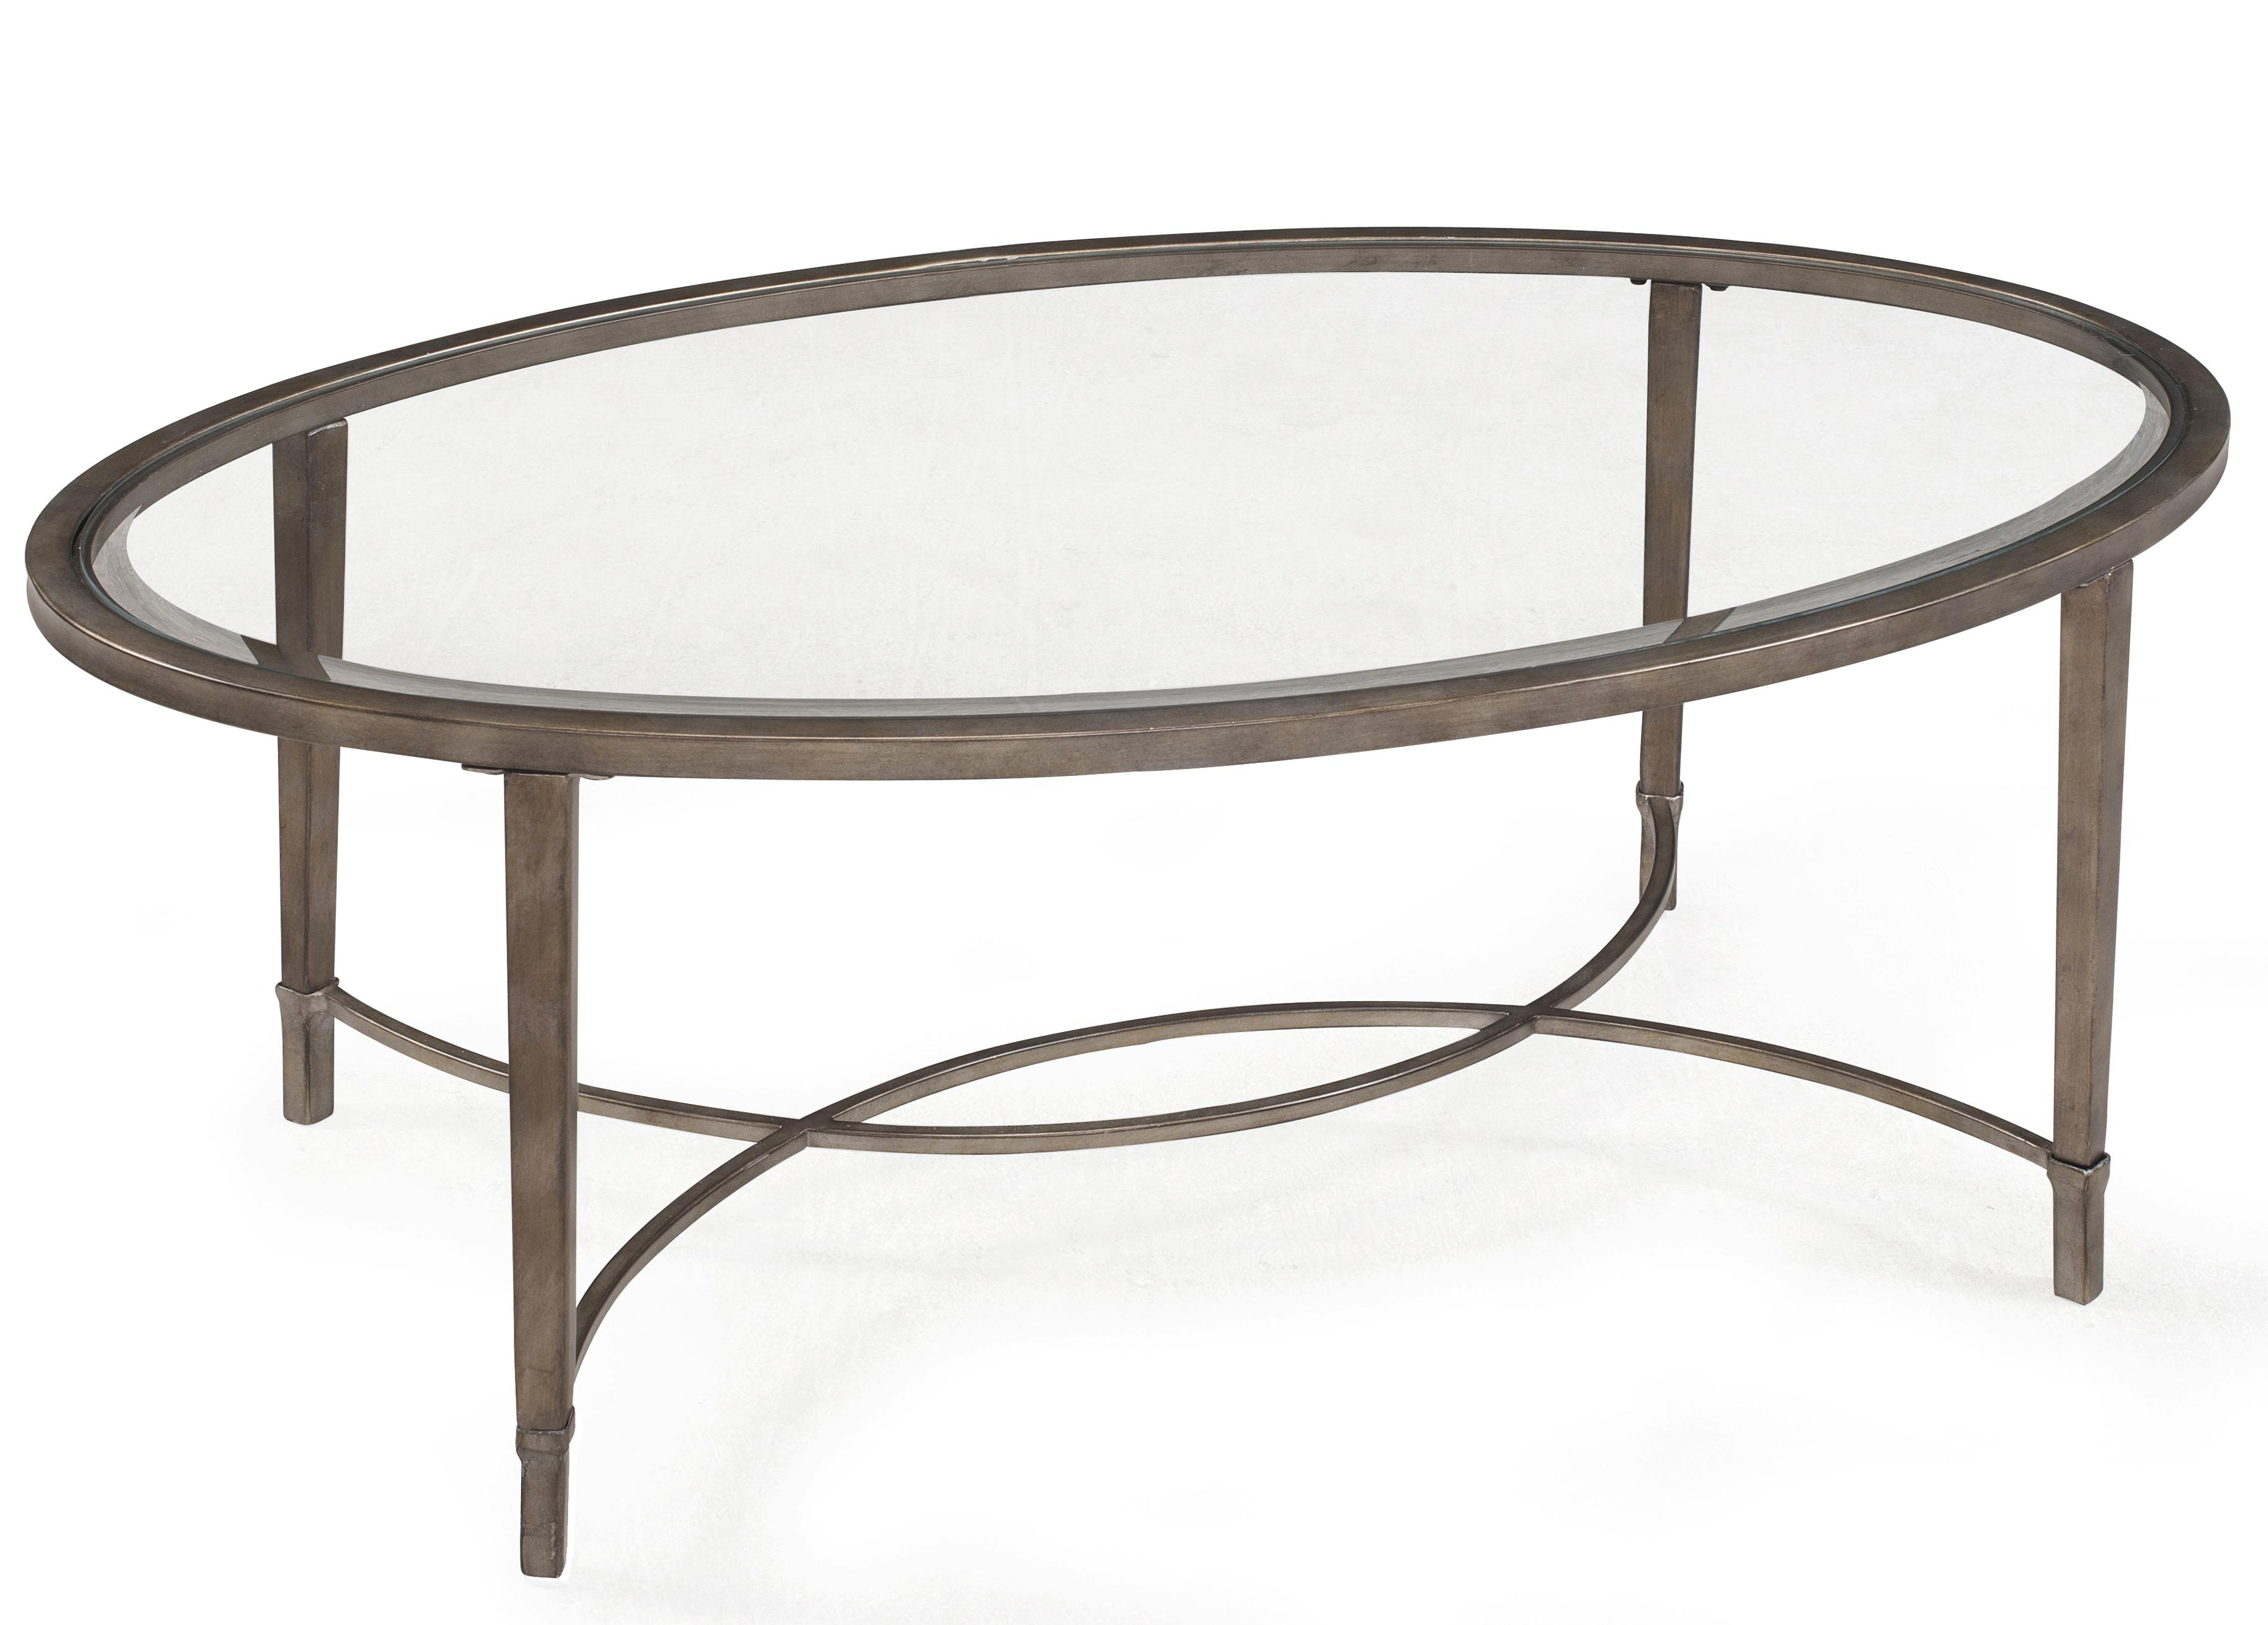 Copia Oval Cocktail Table by Magnussen Home at Baer's Furniture